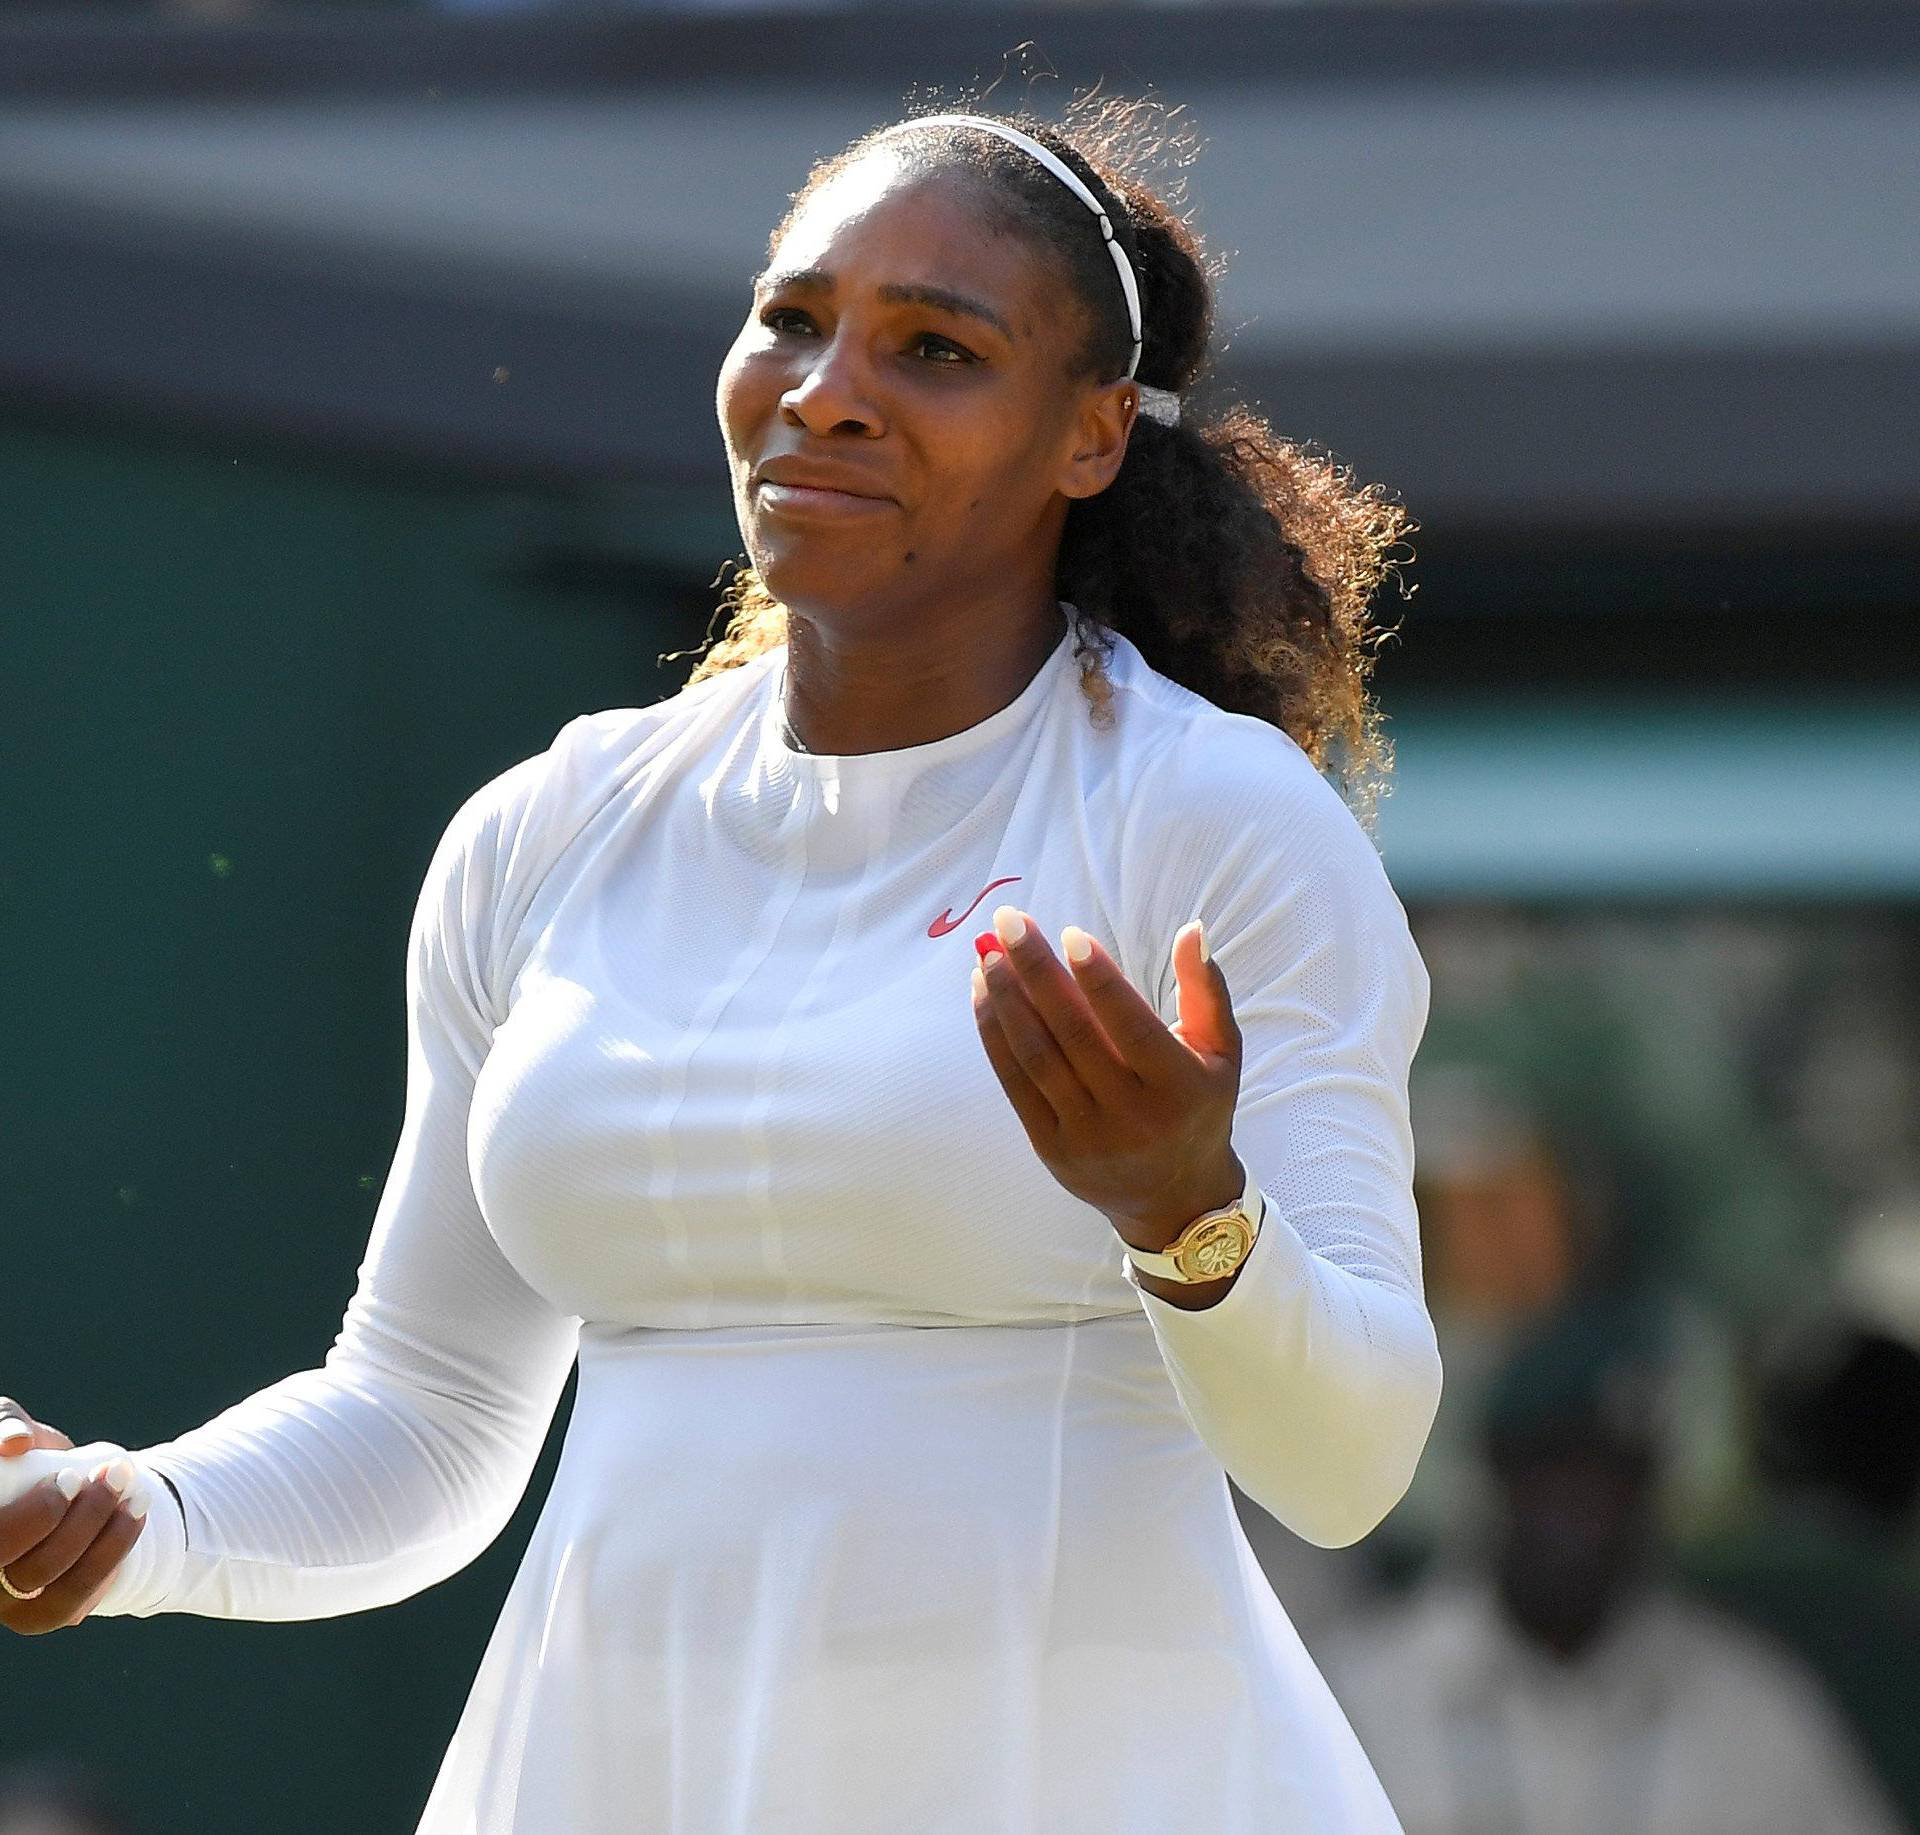 FILE PHOTO: Serena Williams in action at Wimbledon, London, Britain - July 14, 2018